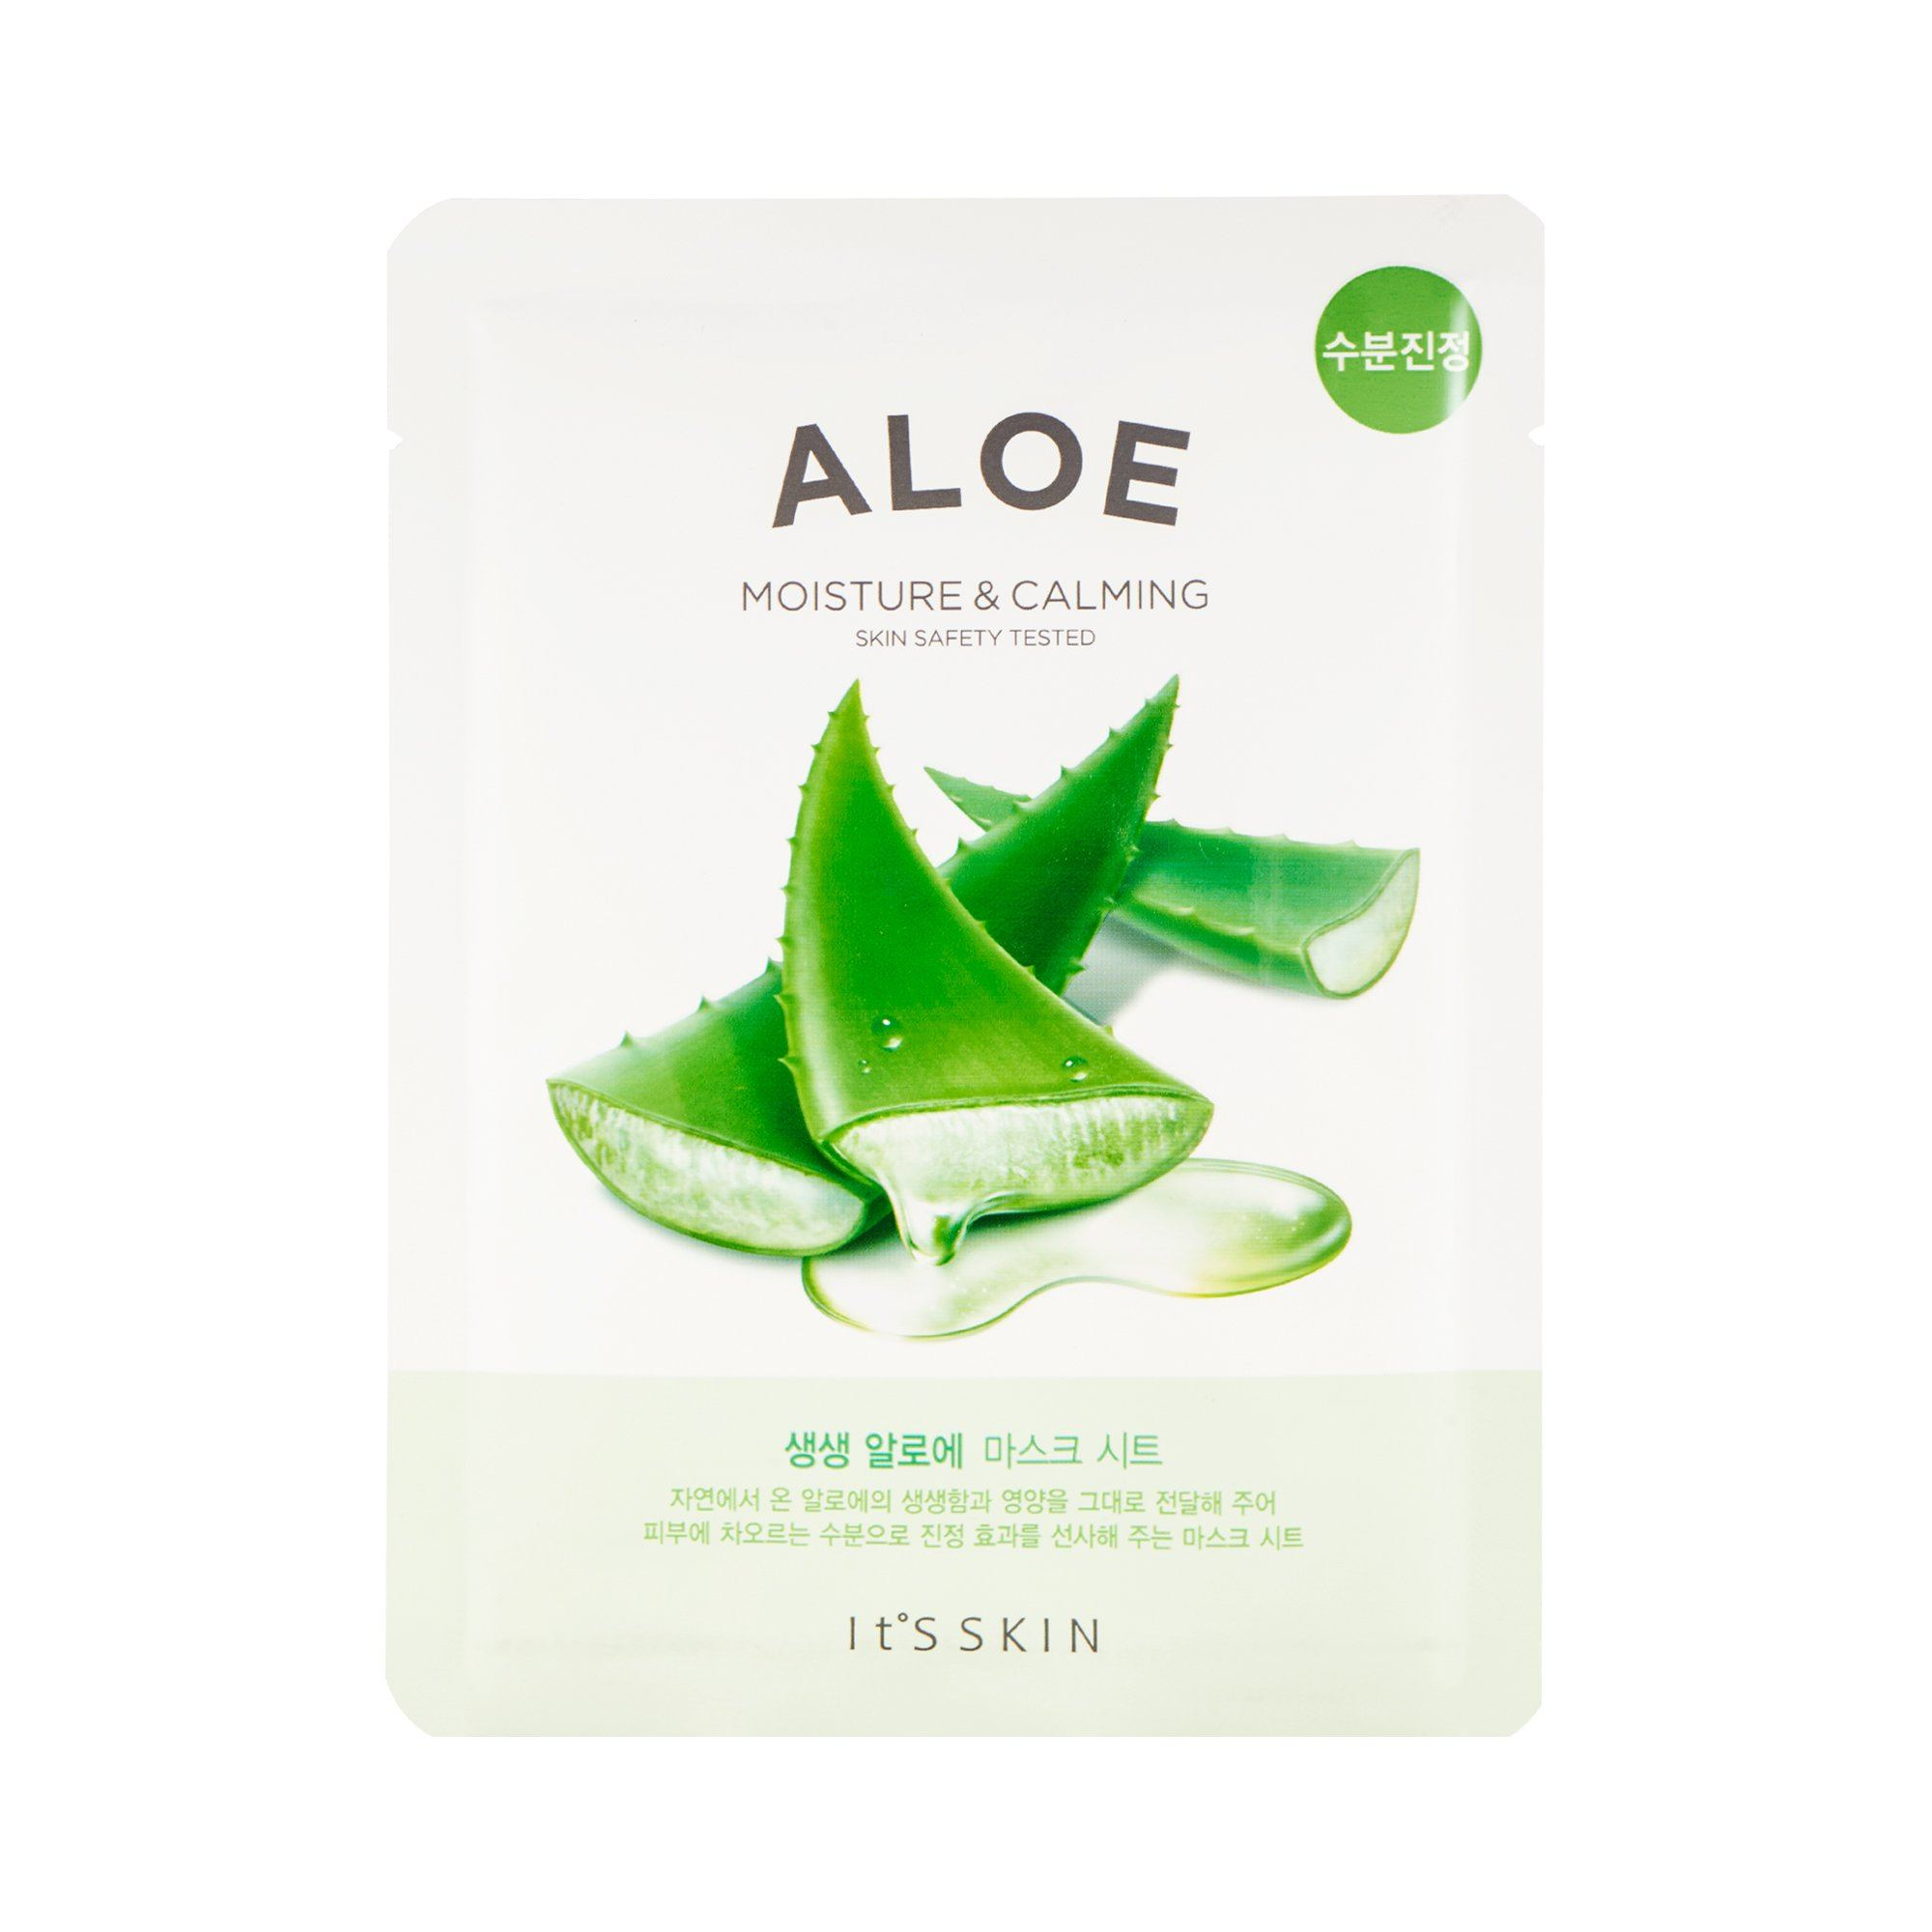 Health & Beauty > Personal Care > Cosmetics > Skin Care > Compressed Skin Care Mask Sheets - The Fresh Mask Sheet Aloe Maska W Płachcie